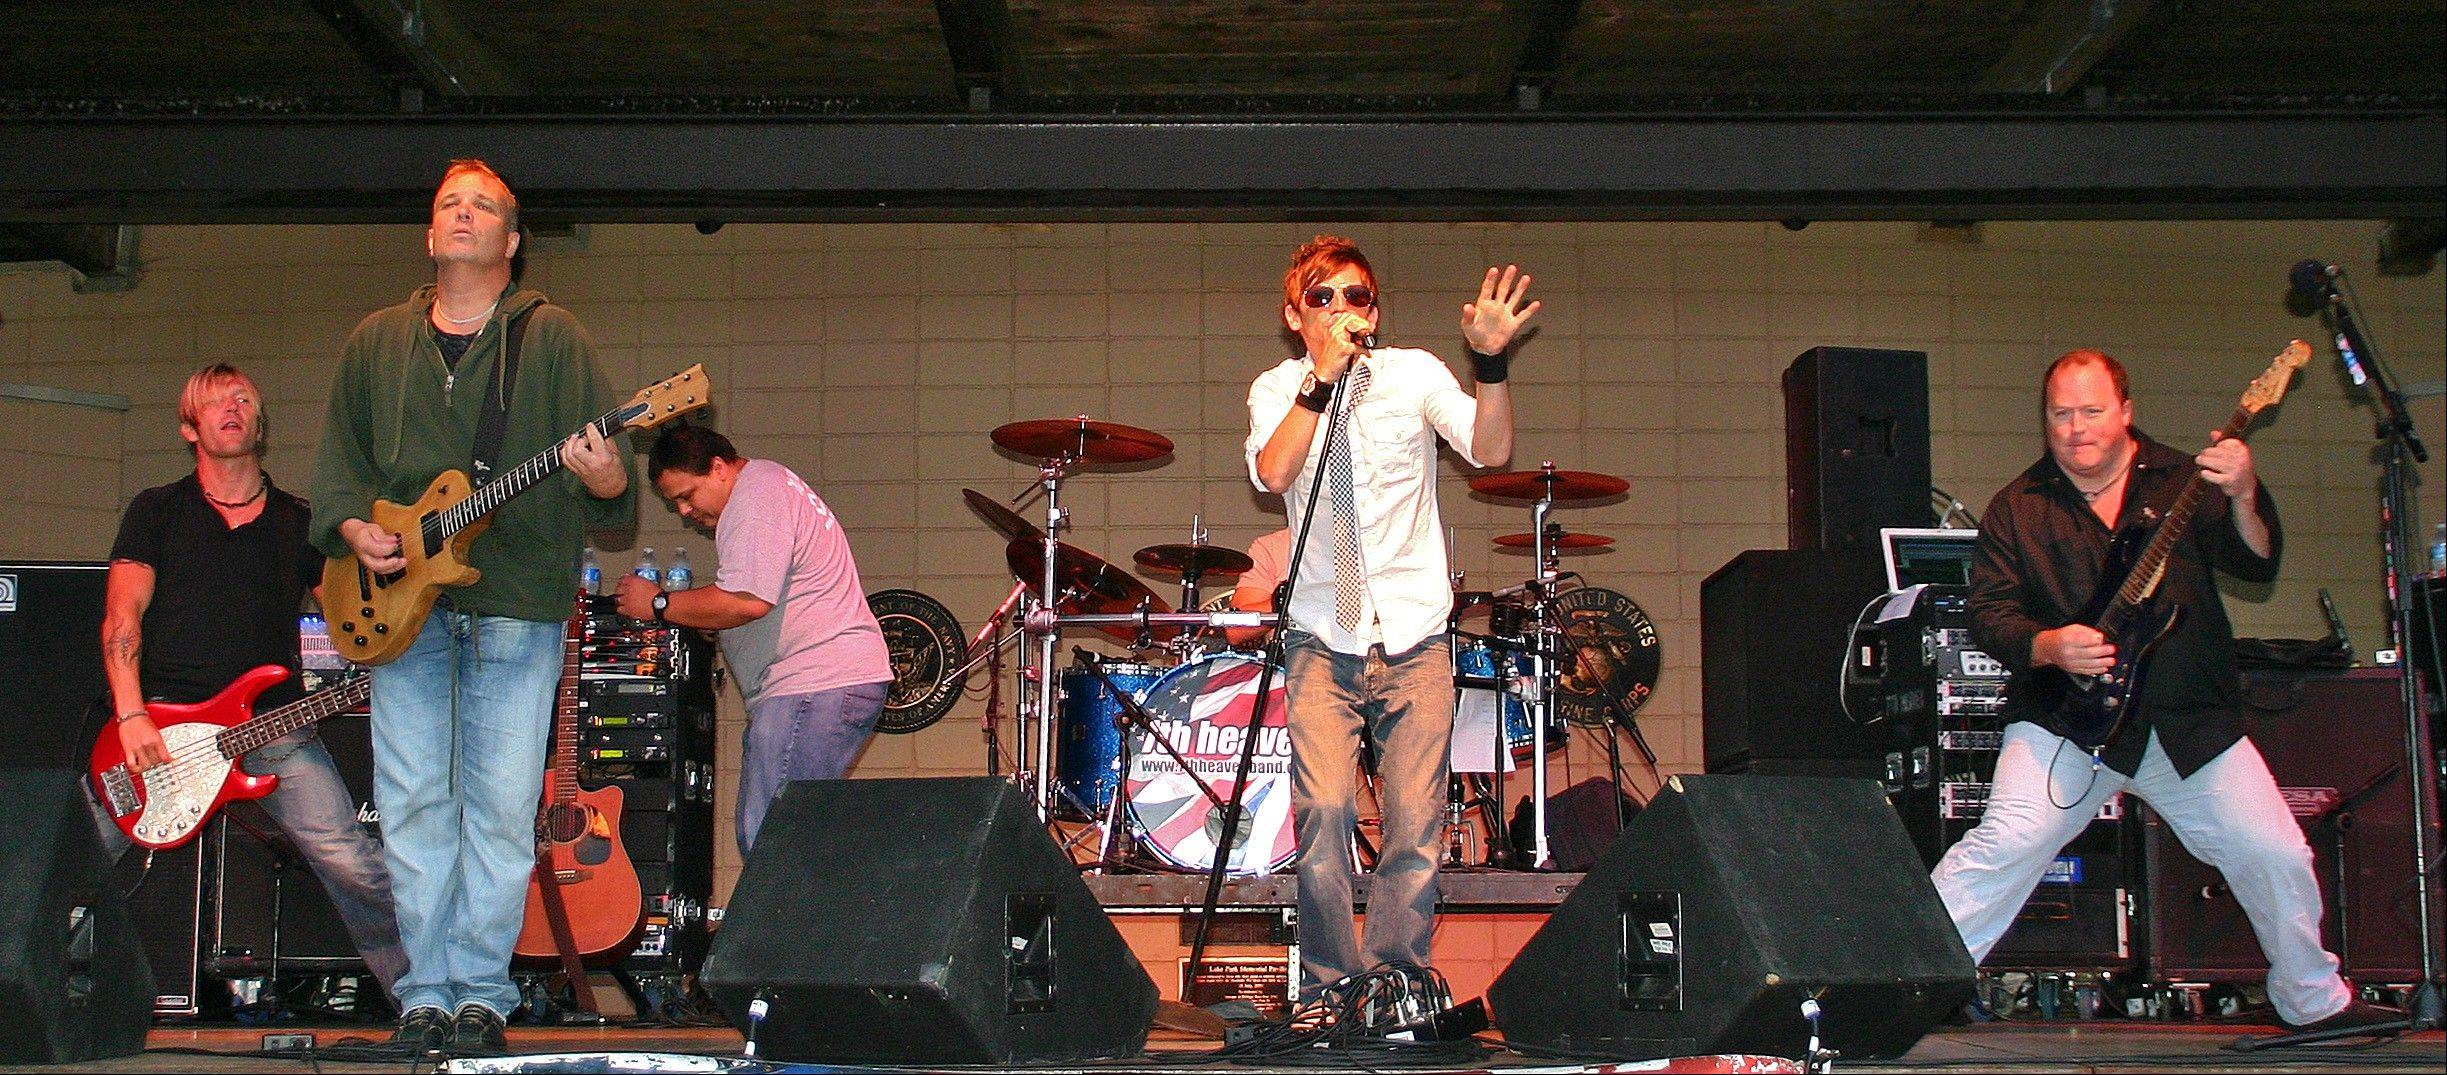 The band 7th heaven will play at 9:30 p.m. Friday at South Elgin's Riverfest Express.